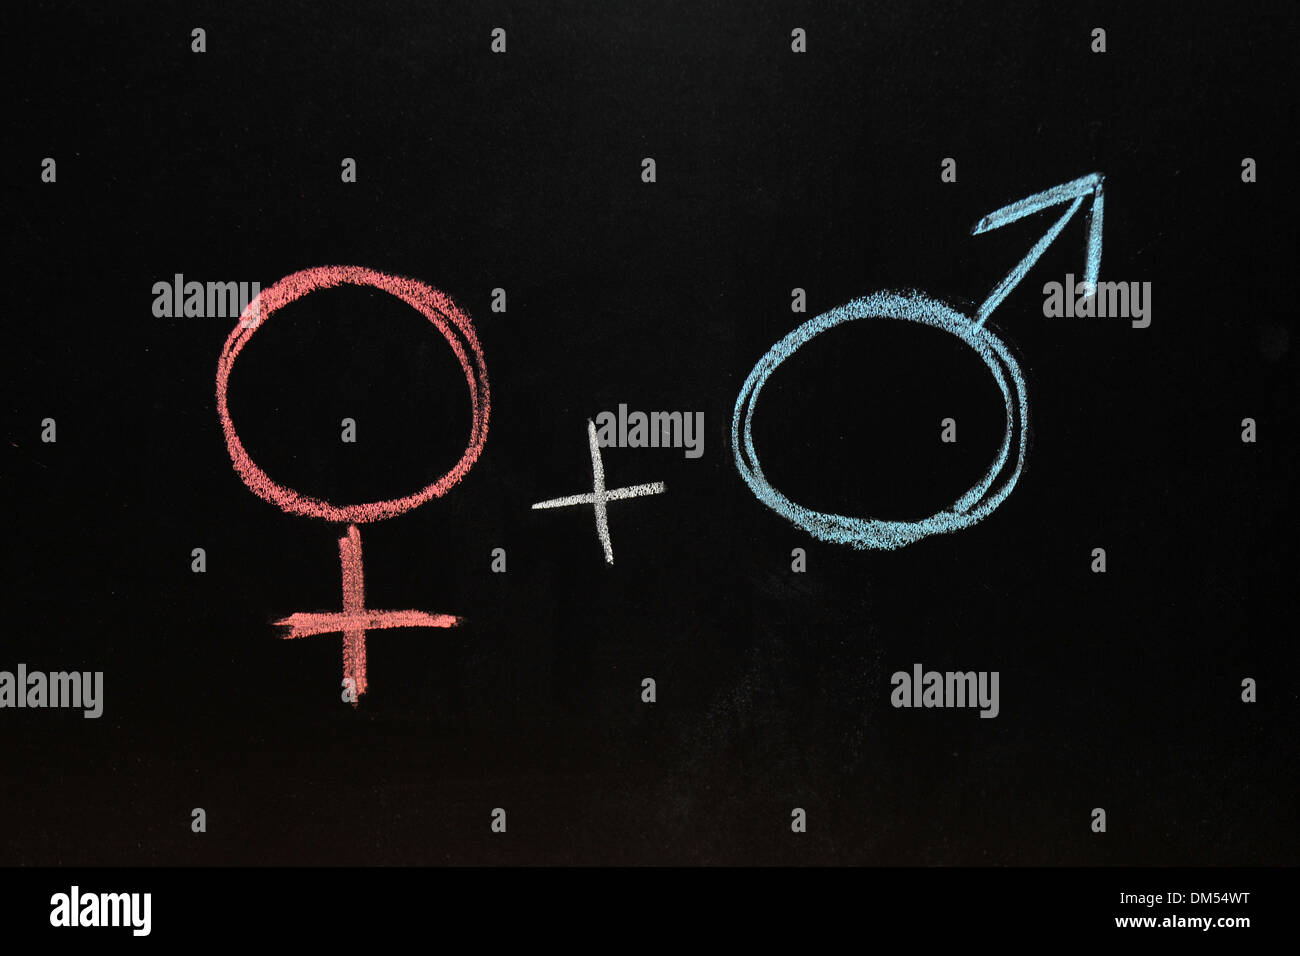 A male and a female gender symbols drawn on a blackboard in chalk. - Stock Image